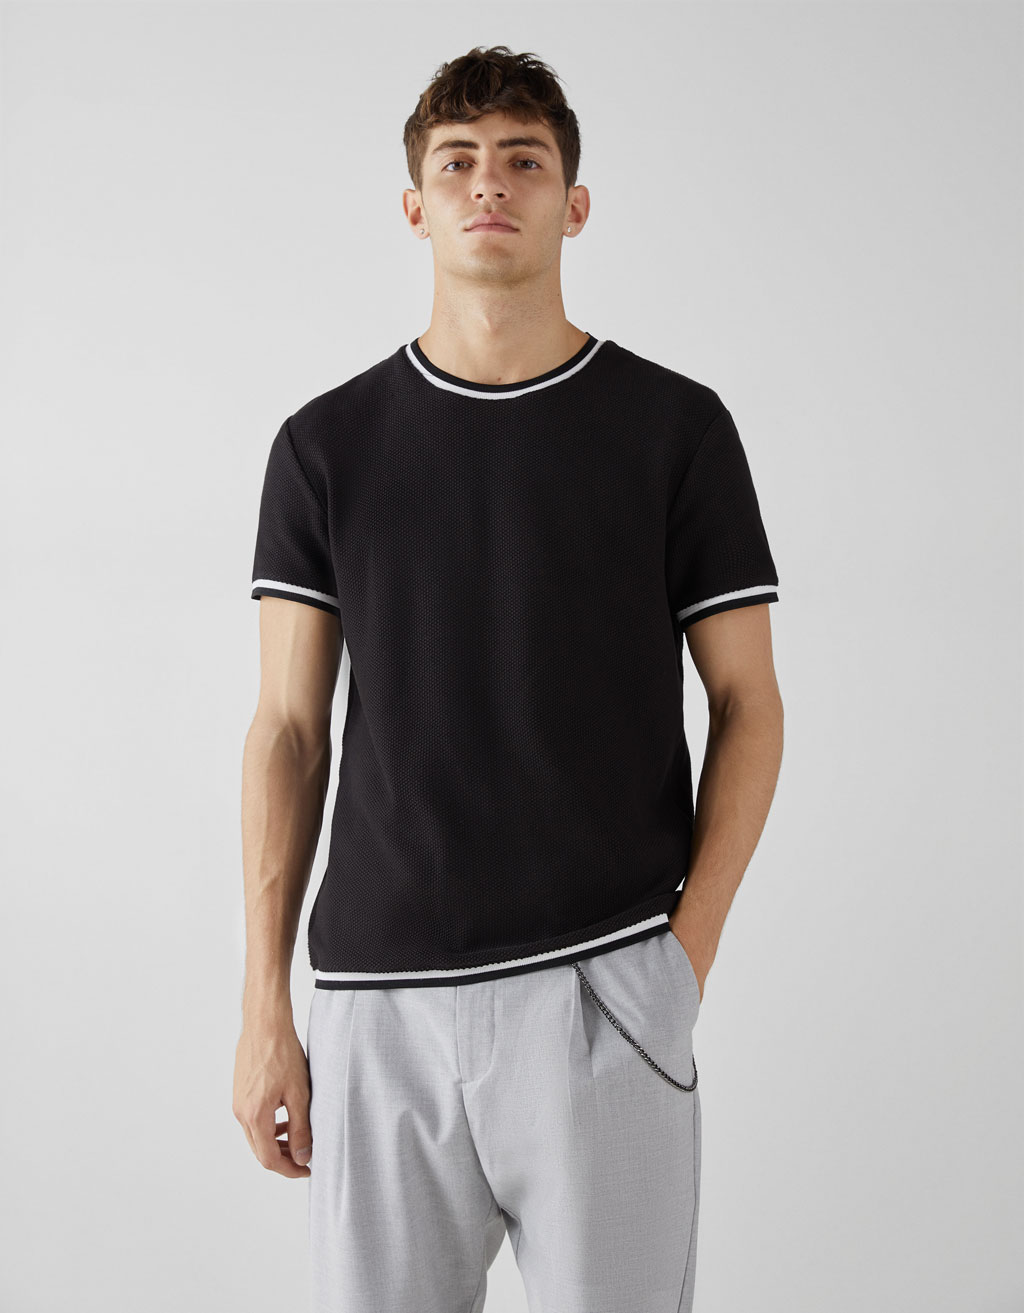 Contrasting textured T-shirt